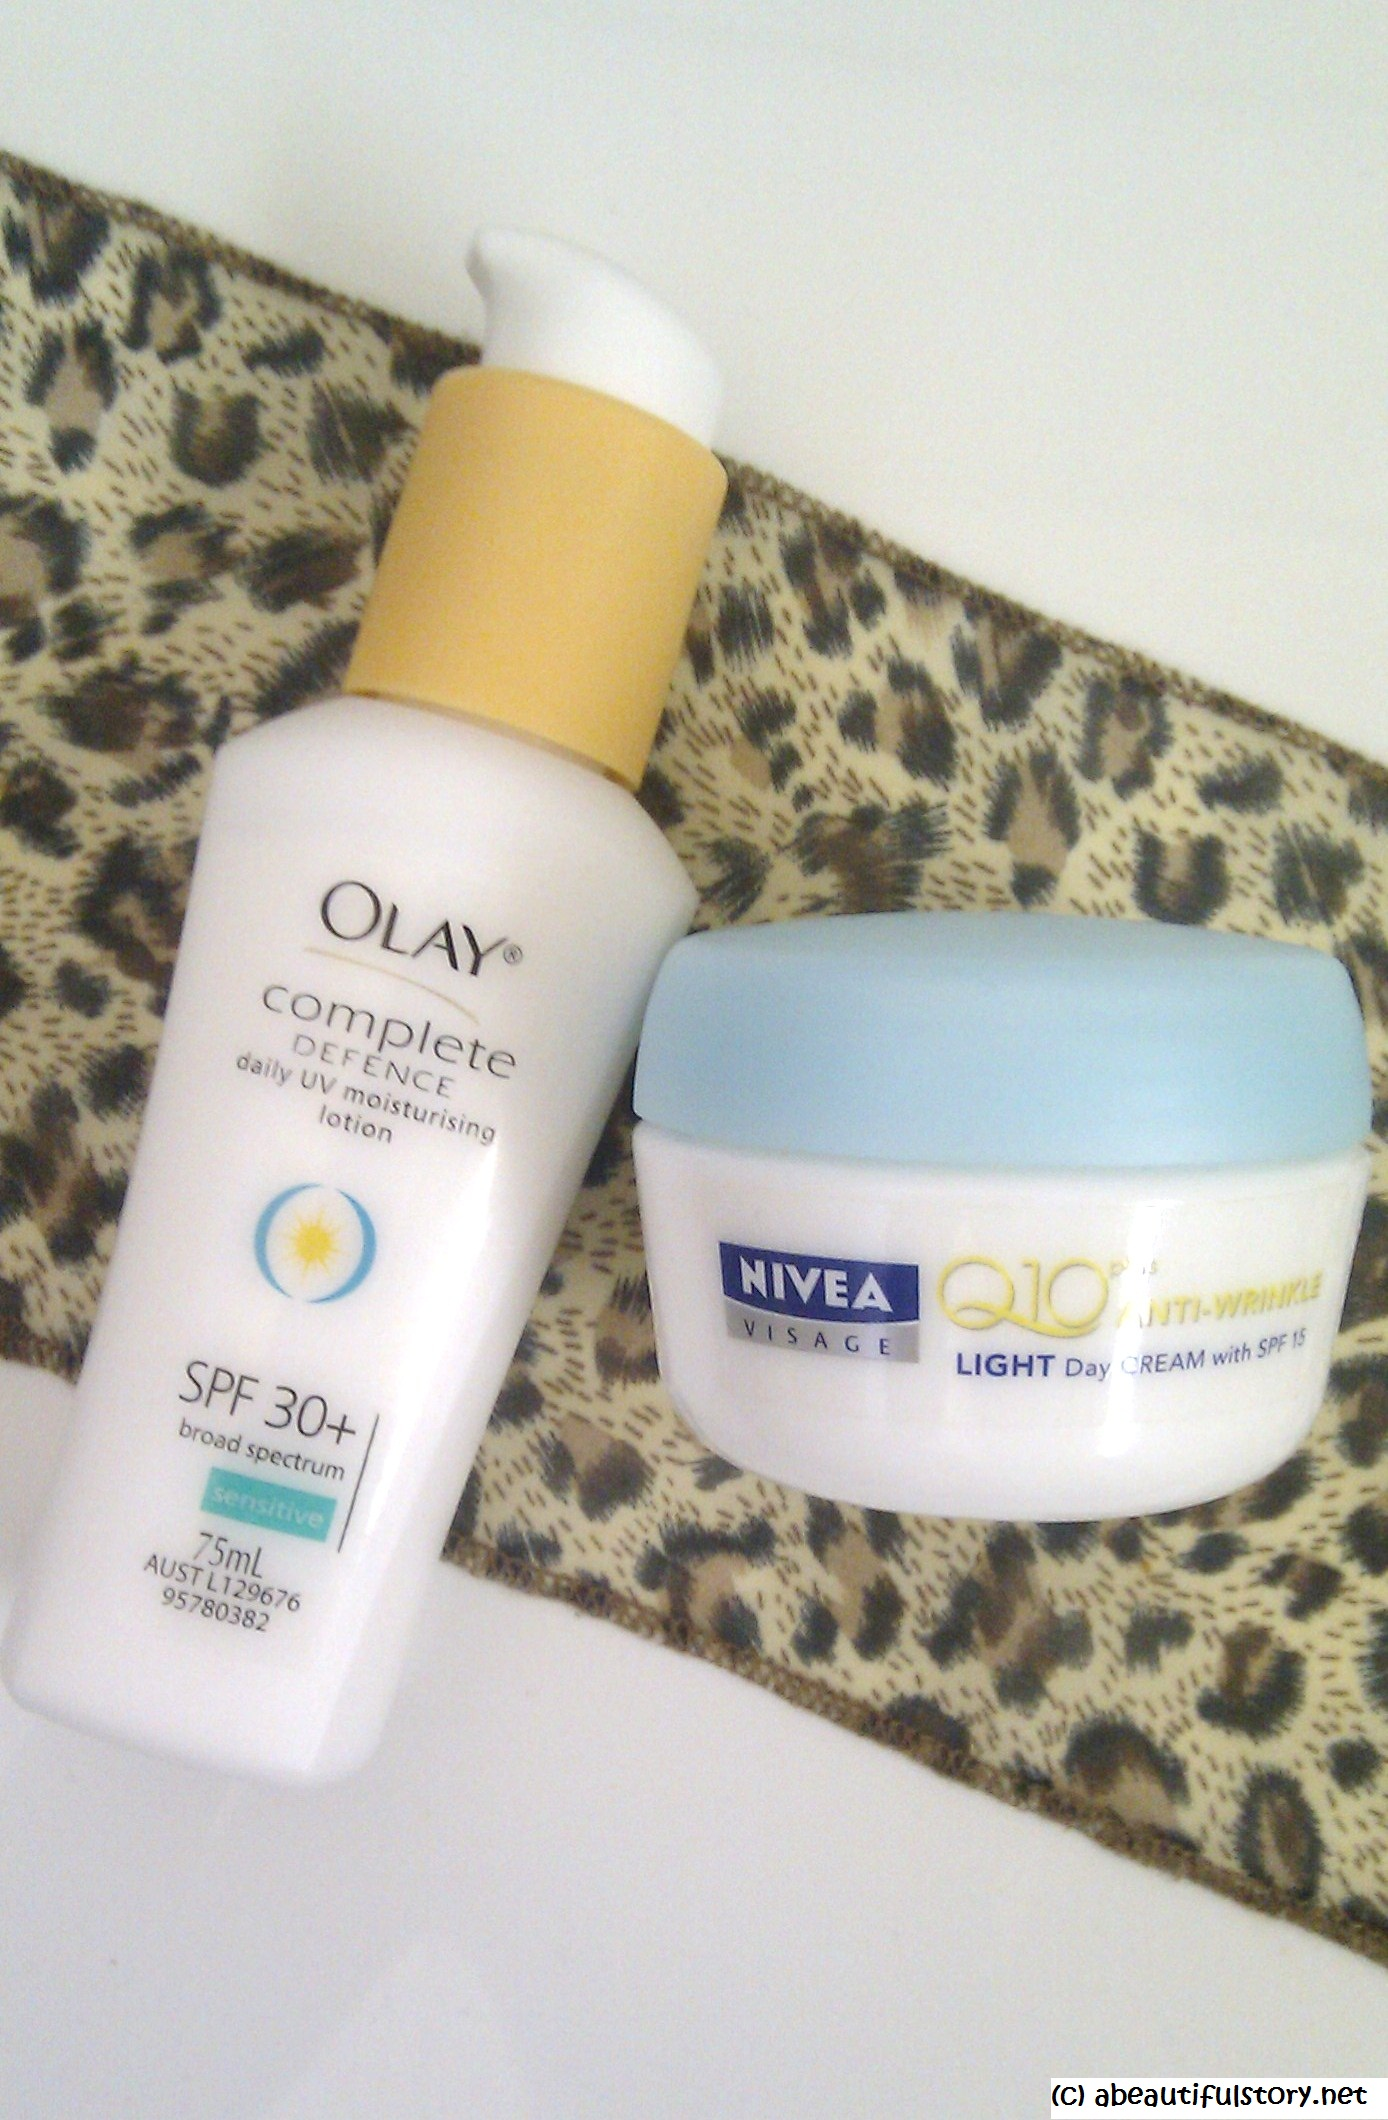 Olay Complete Defence Daily Uv Moisturising Lotion A Beautiful Story Price Range The Nivea Product Usually Retails Between 16 And Close To 20 Aud Depending On Where You Buy It Whilst Is Around 15 But Was Even